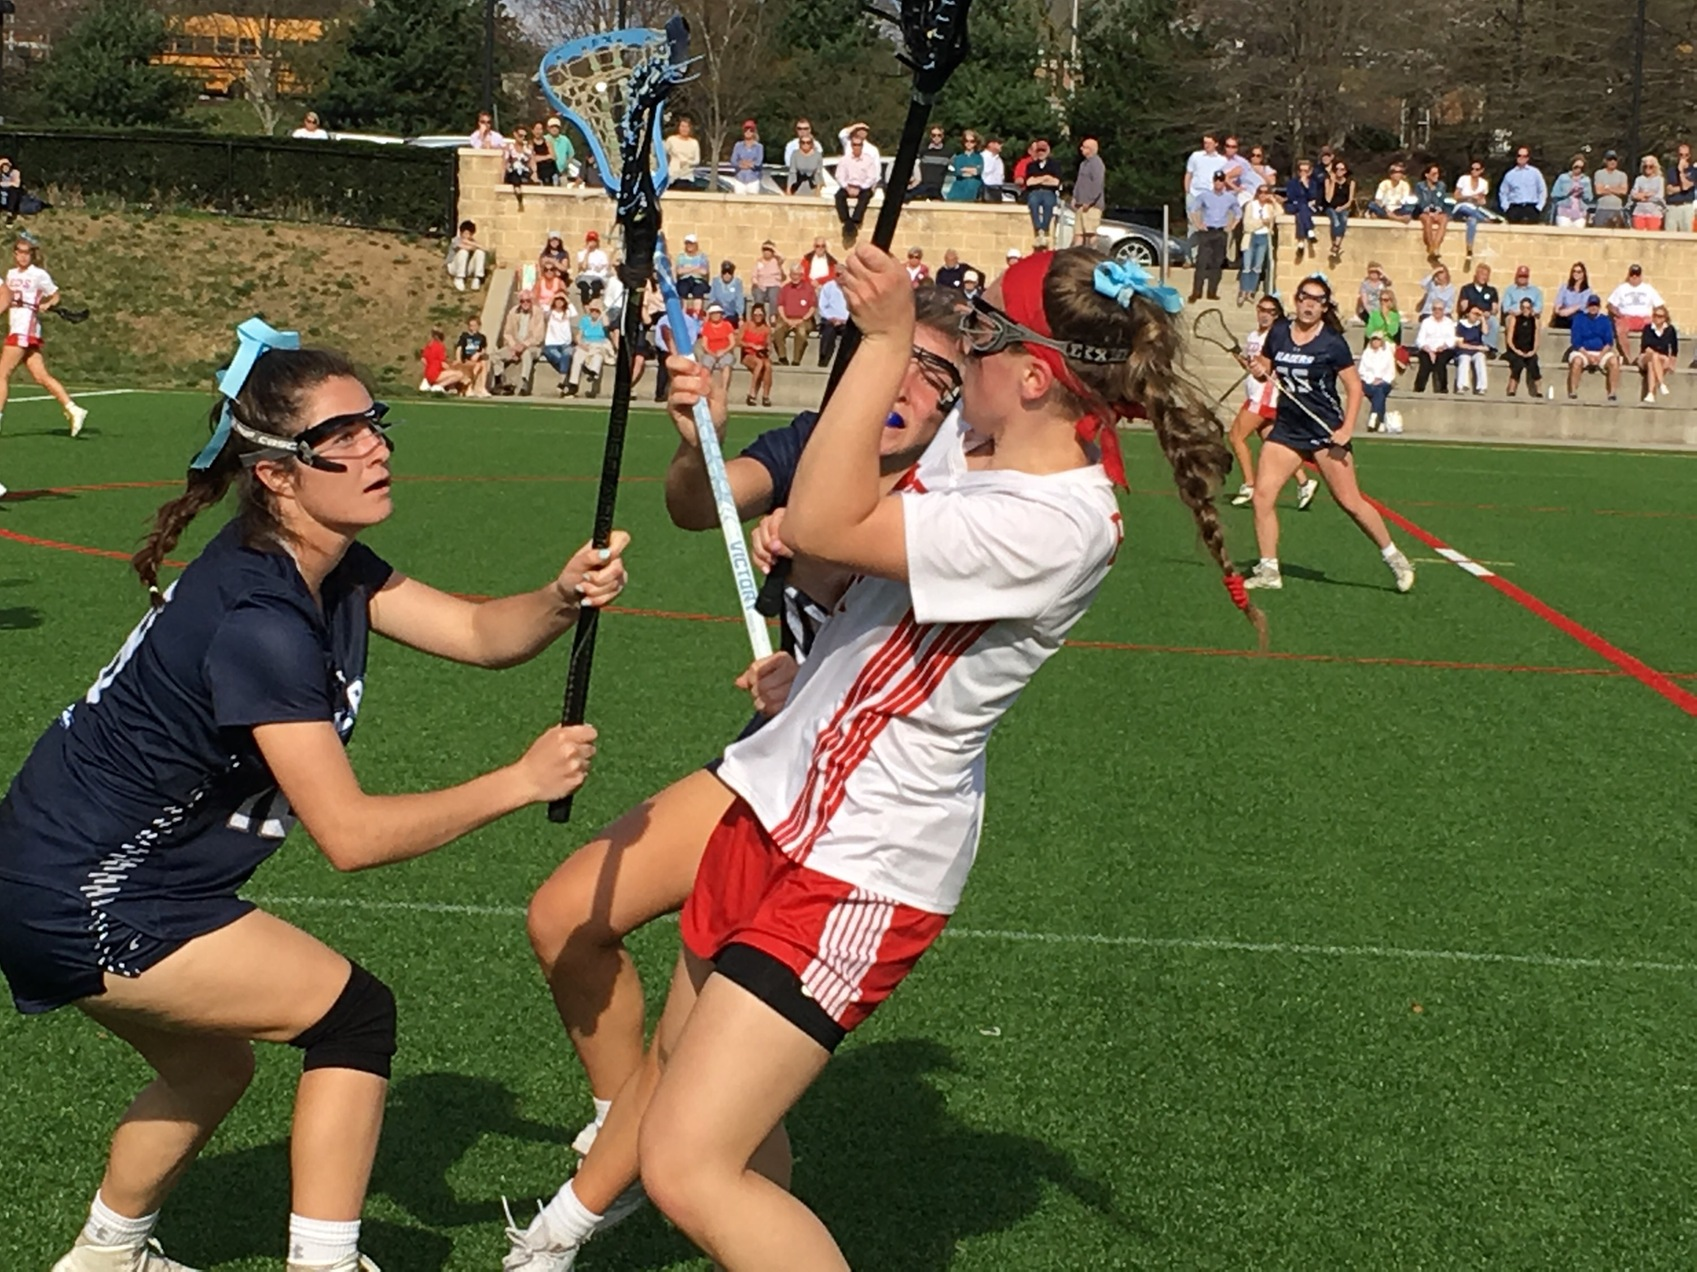 NDP still unbeaten in A Conference lax after edging Roland Park